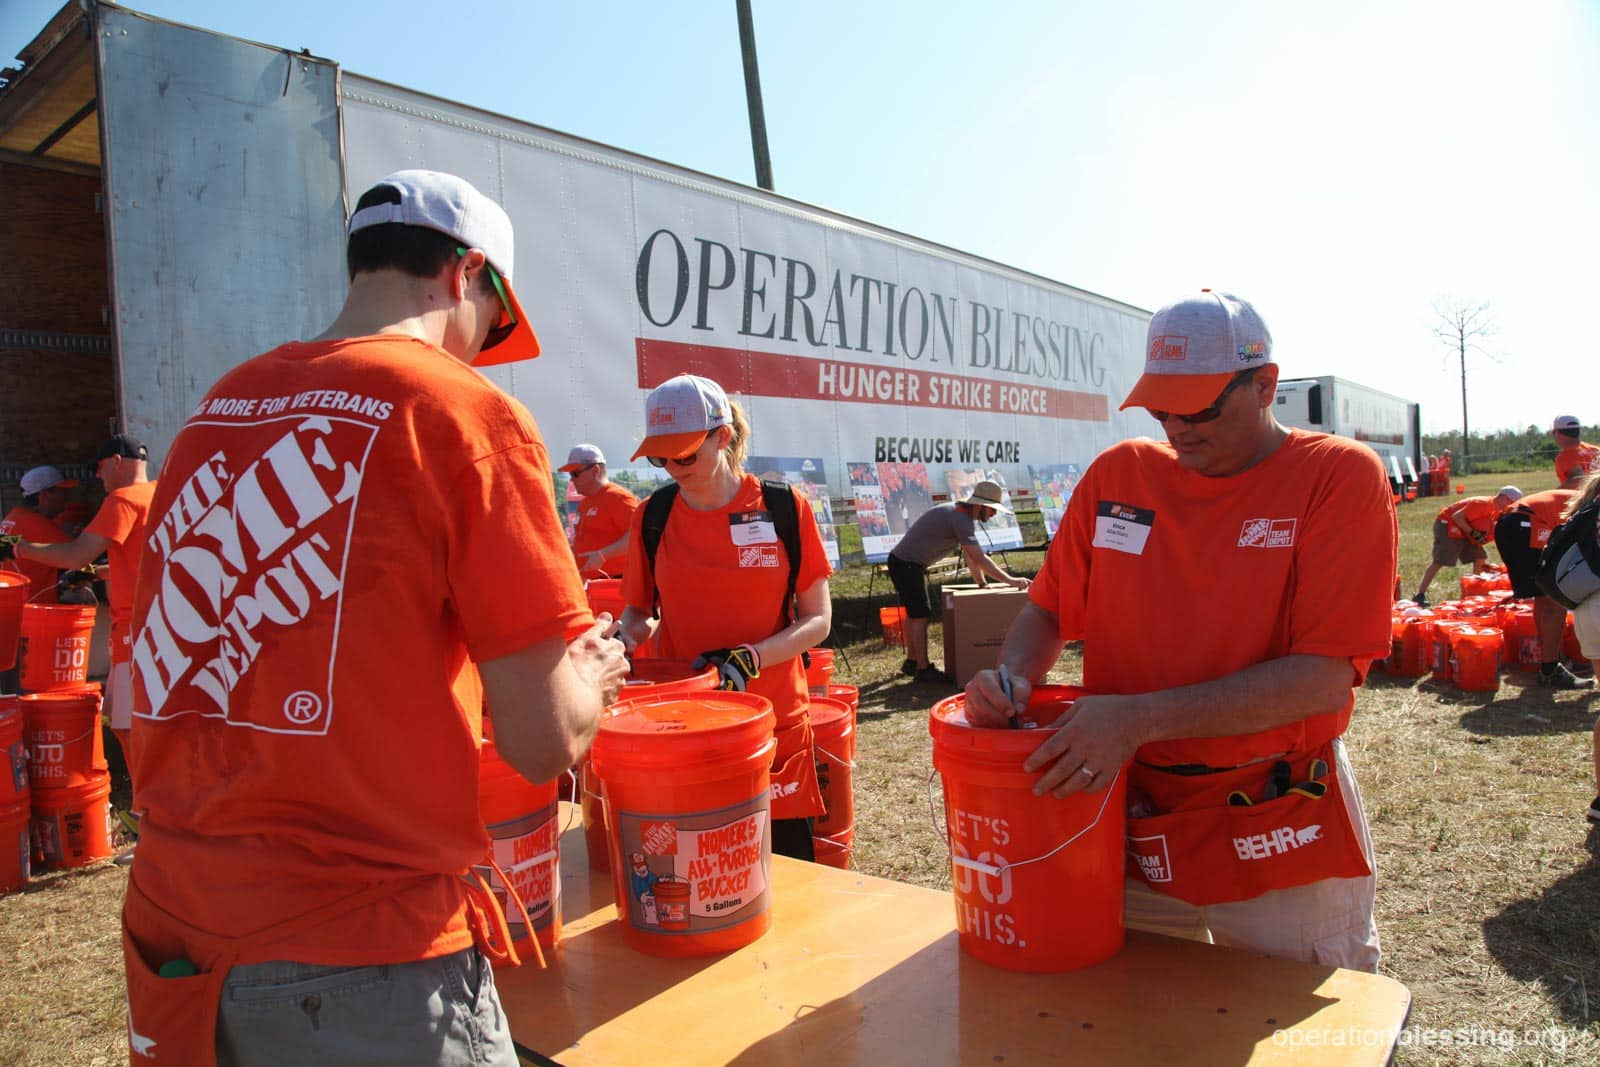 Home Depot volunteers pack Operation Blessing relief trucks with flood kits to prepare for storms like Hurricane Florence.